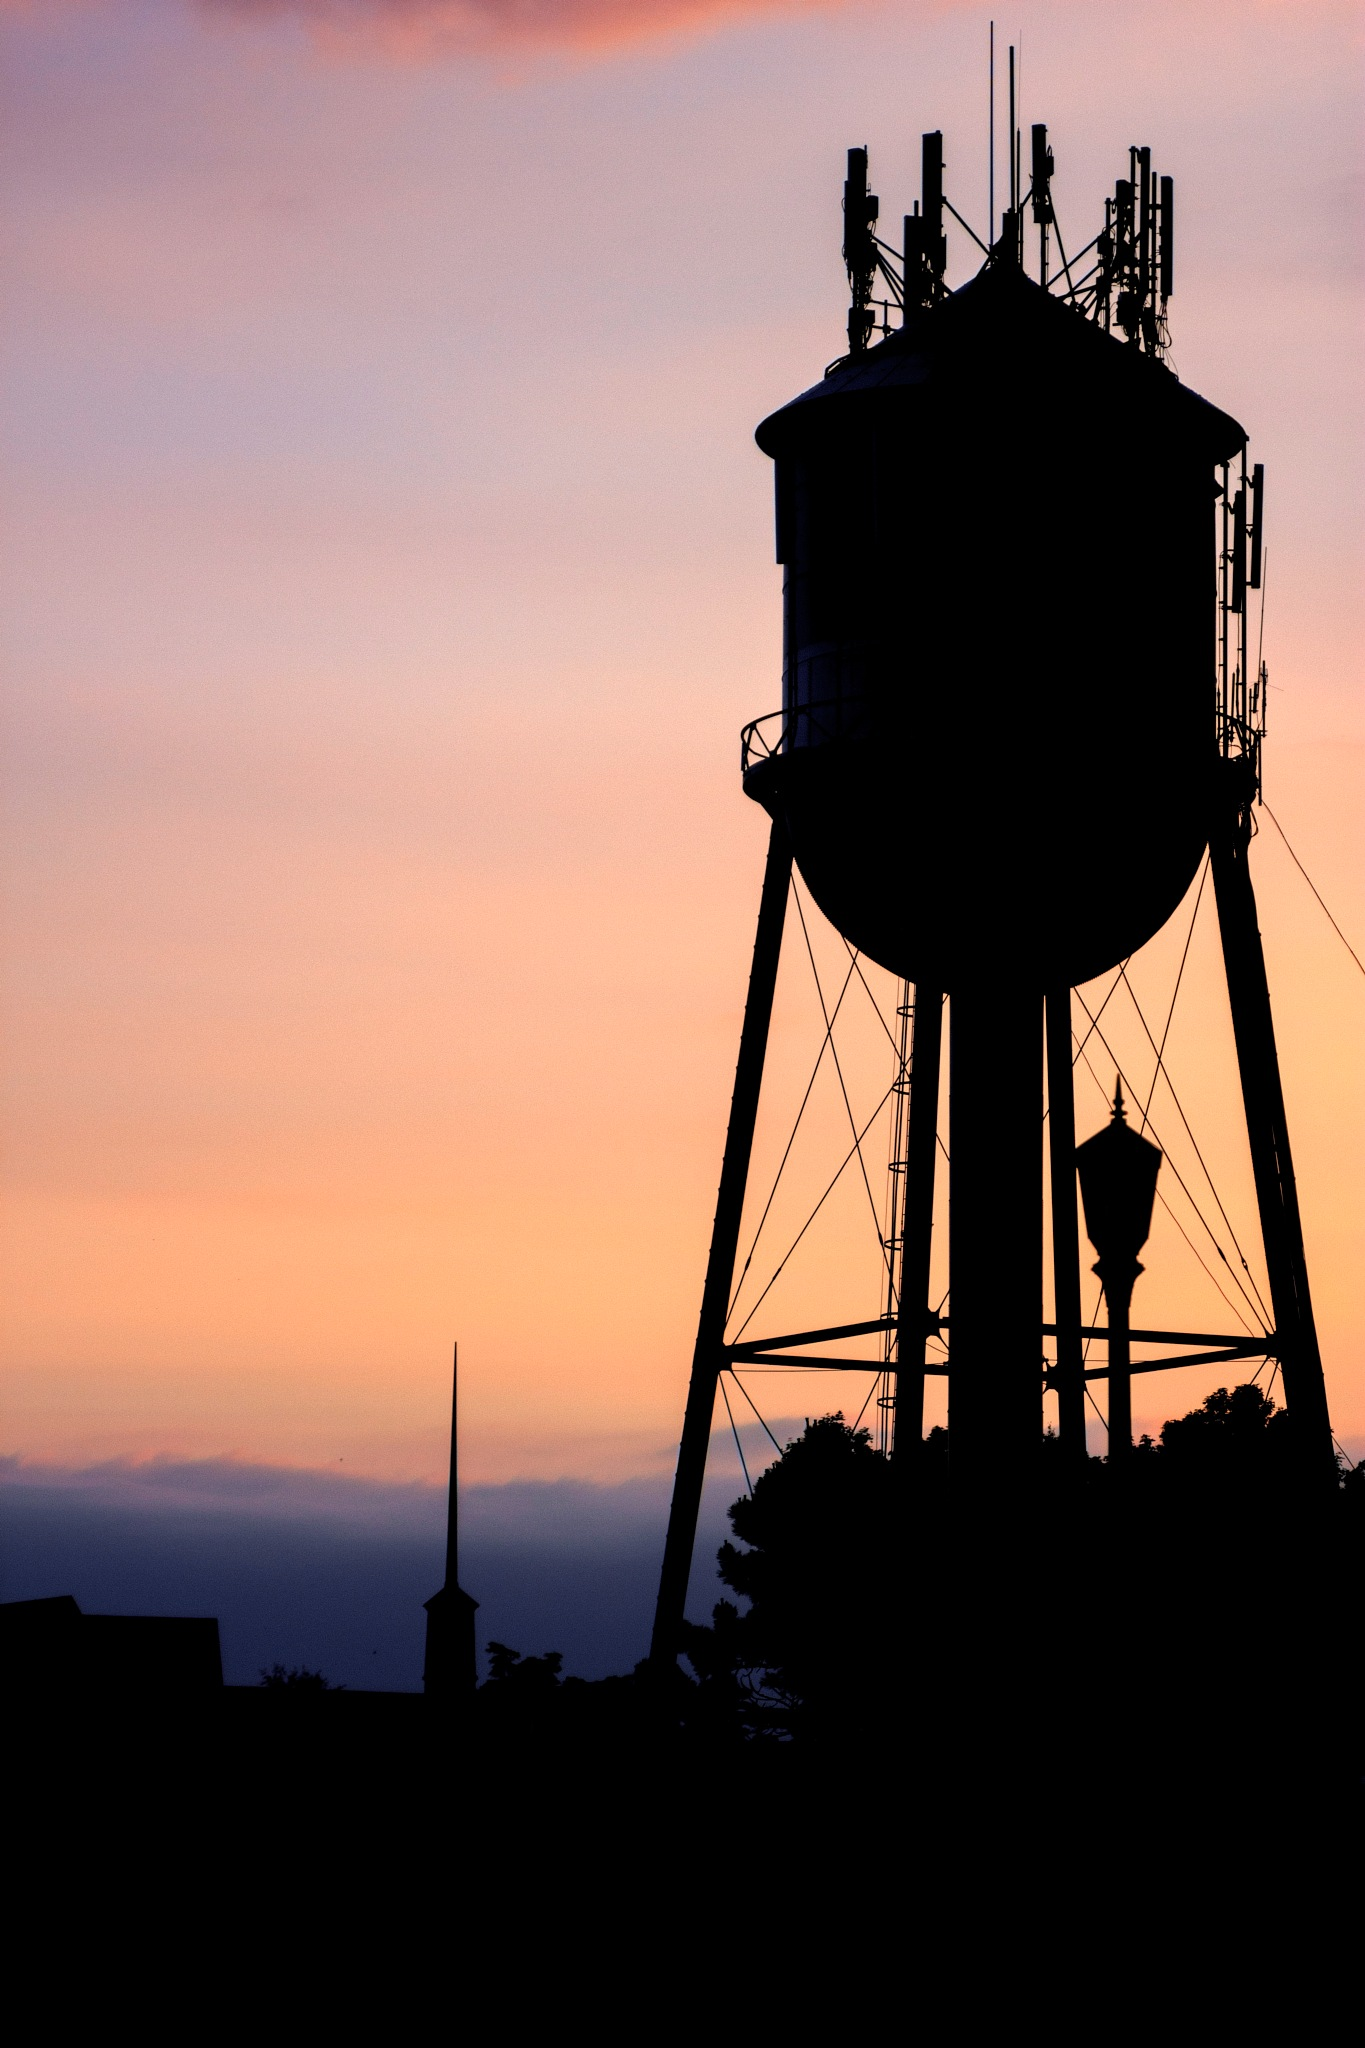 Water Tower Sunrise by Ethan Treadwell